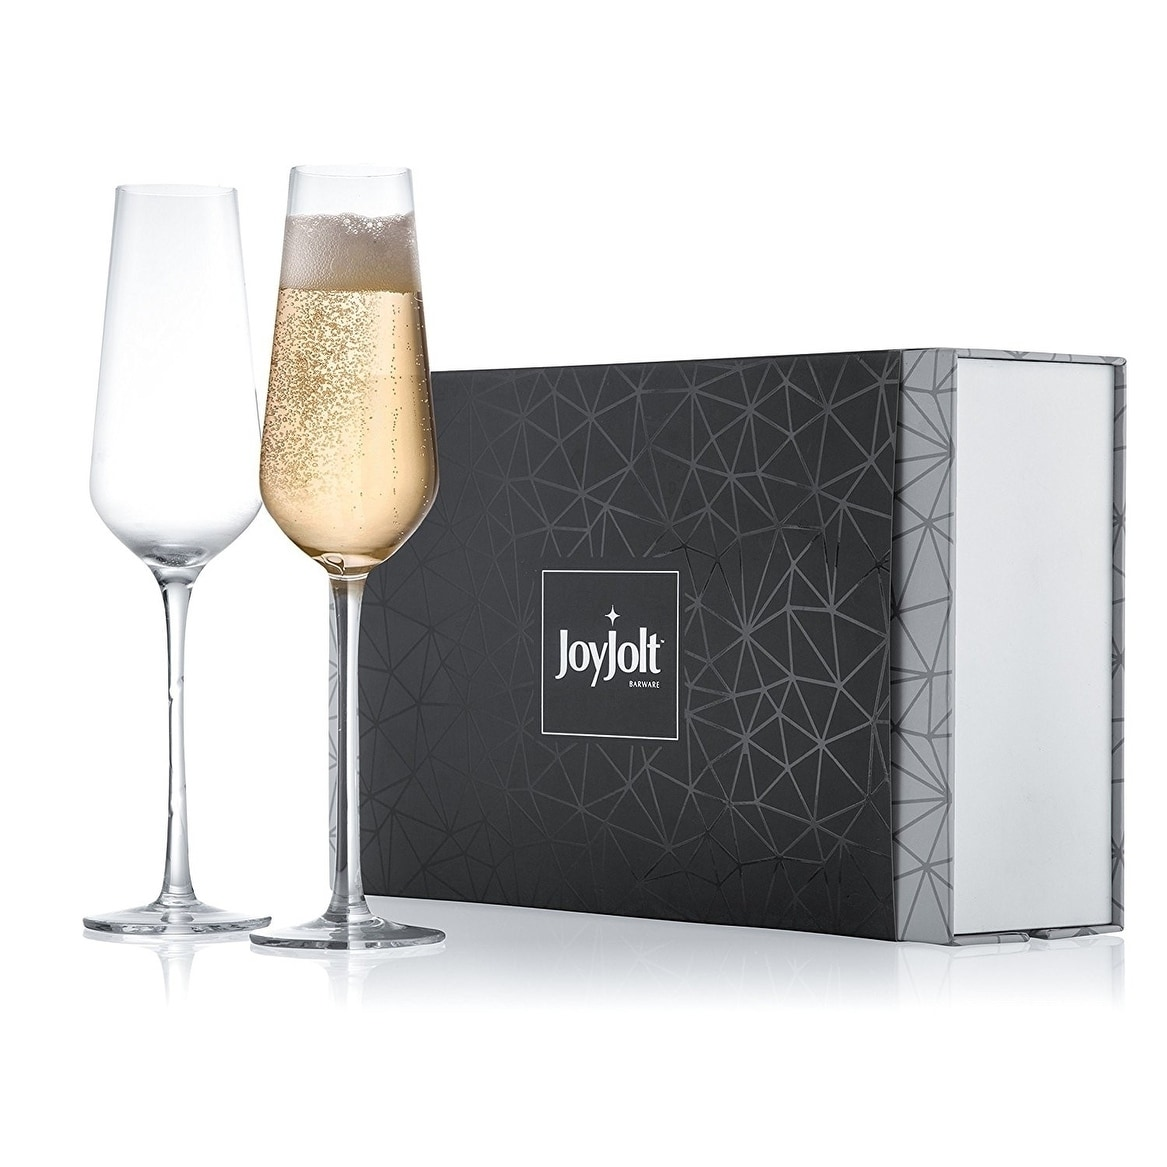 High End Crystal Wine Glasses Joyjolt Meille High End Non Leaded Crystal Champagne Glasses Set Of 2 8 2 Ounce Flute Glasses